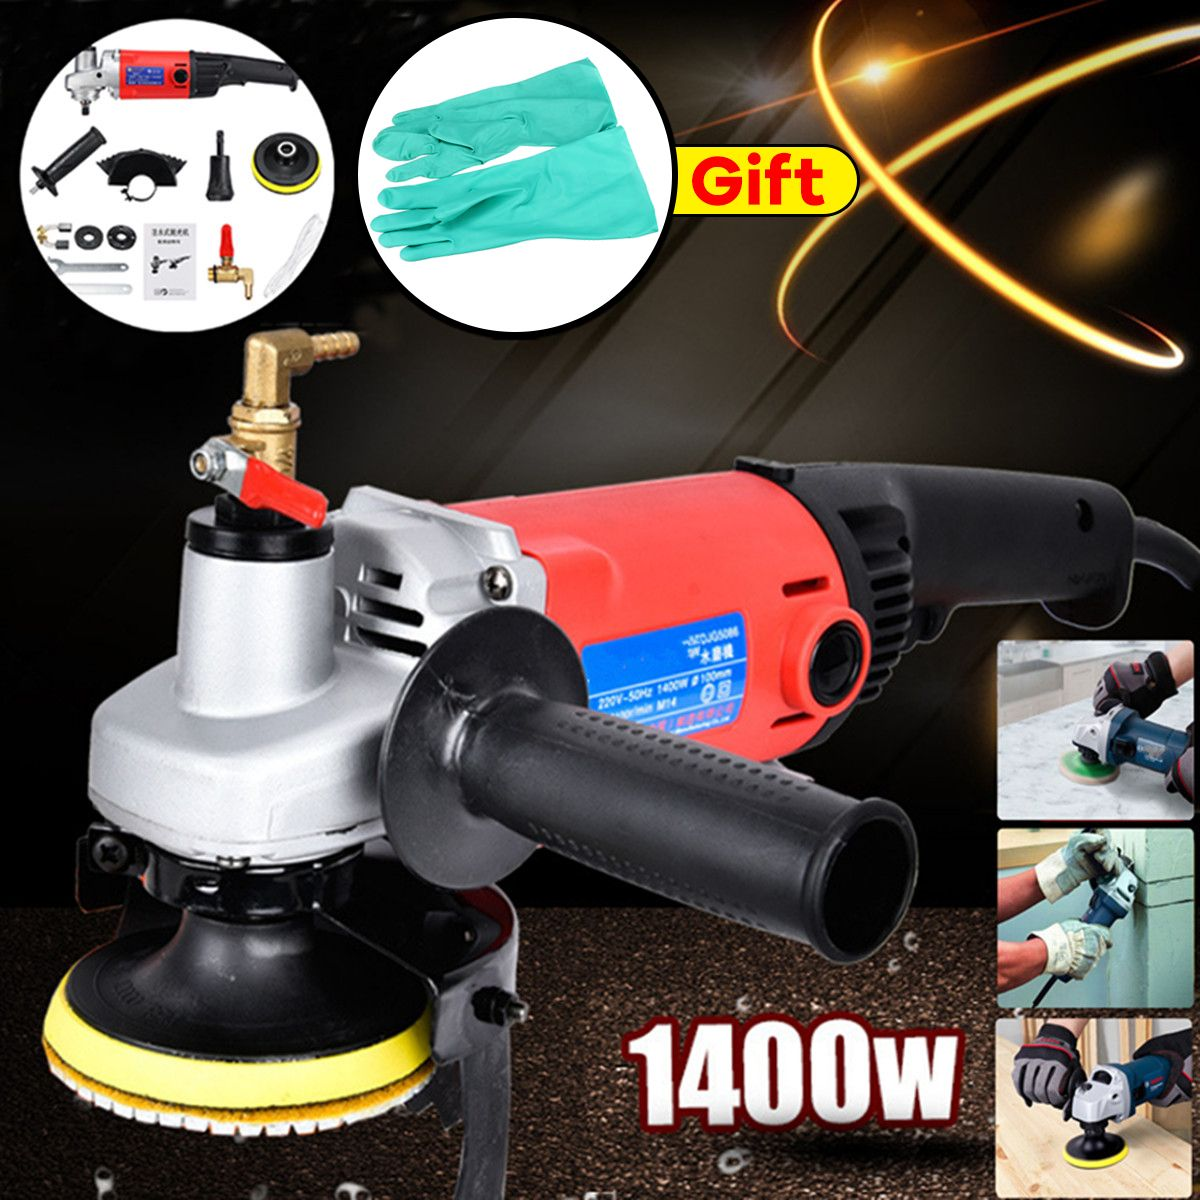 New 1400W Polisher Grinder Diamond Polishing pads Angle Grinder For Concrete Marble Granite with Gloves Power Tools